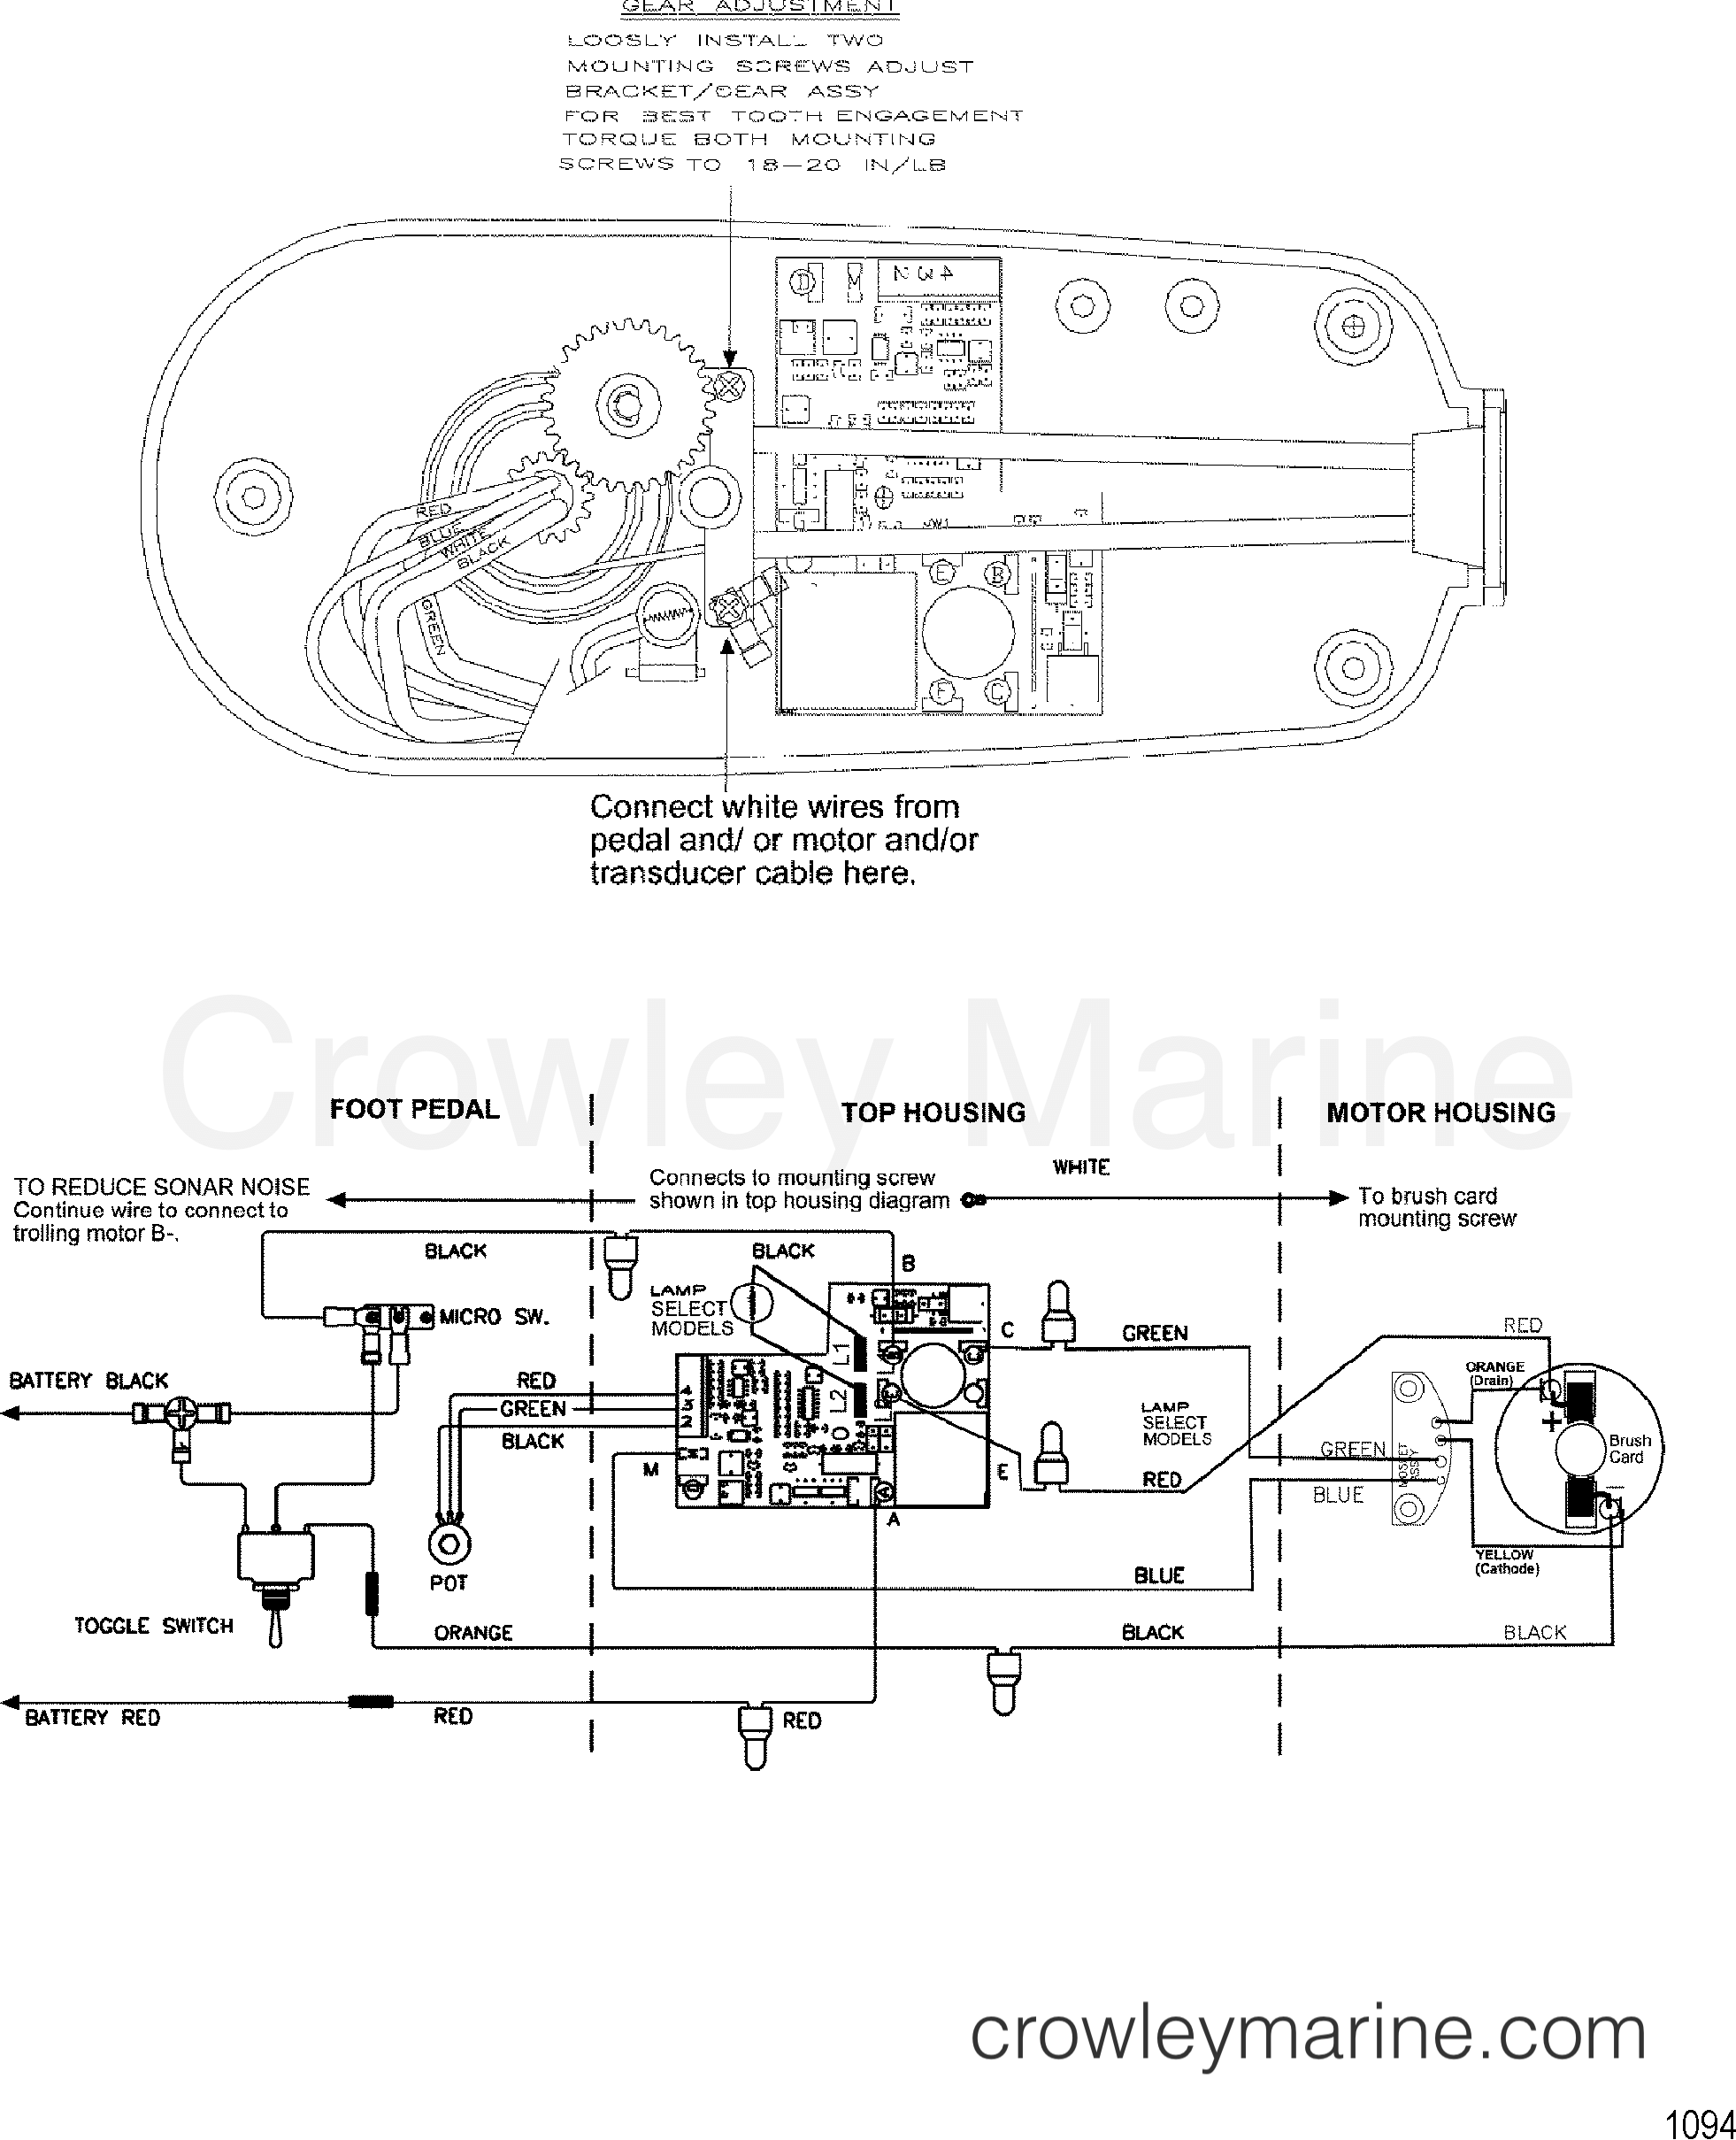 Fluorescent Lamp Ballast Wiring Diagram